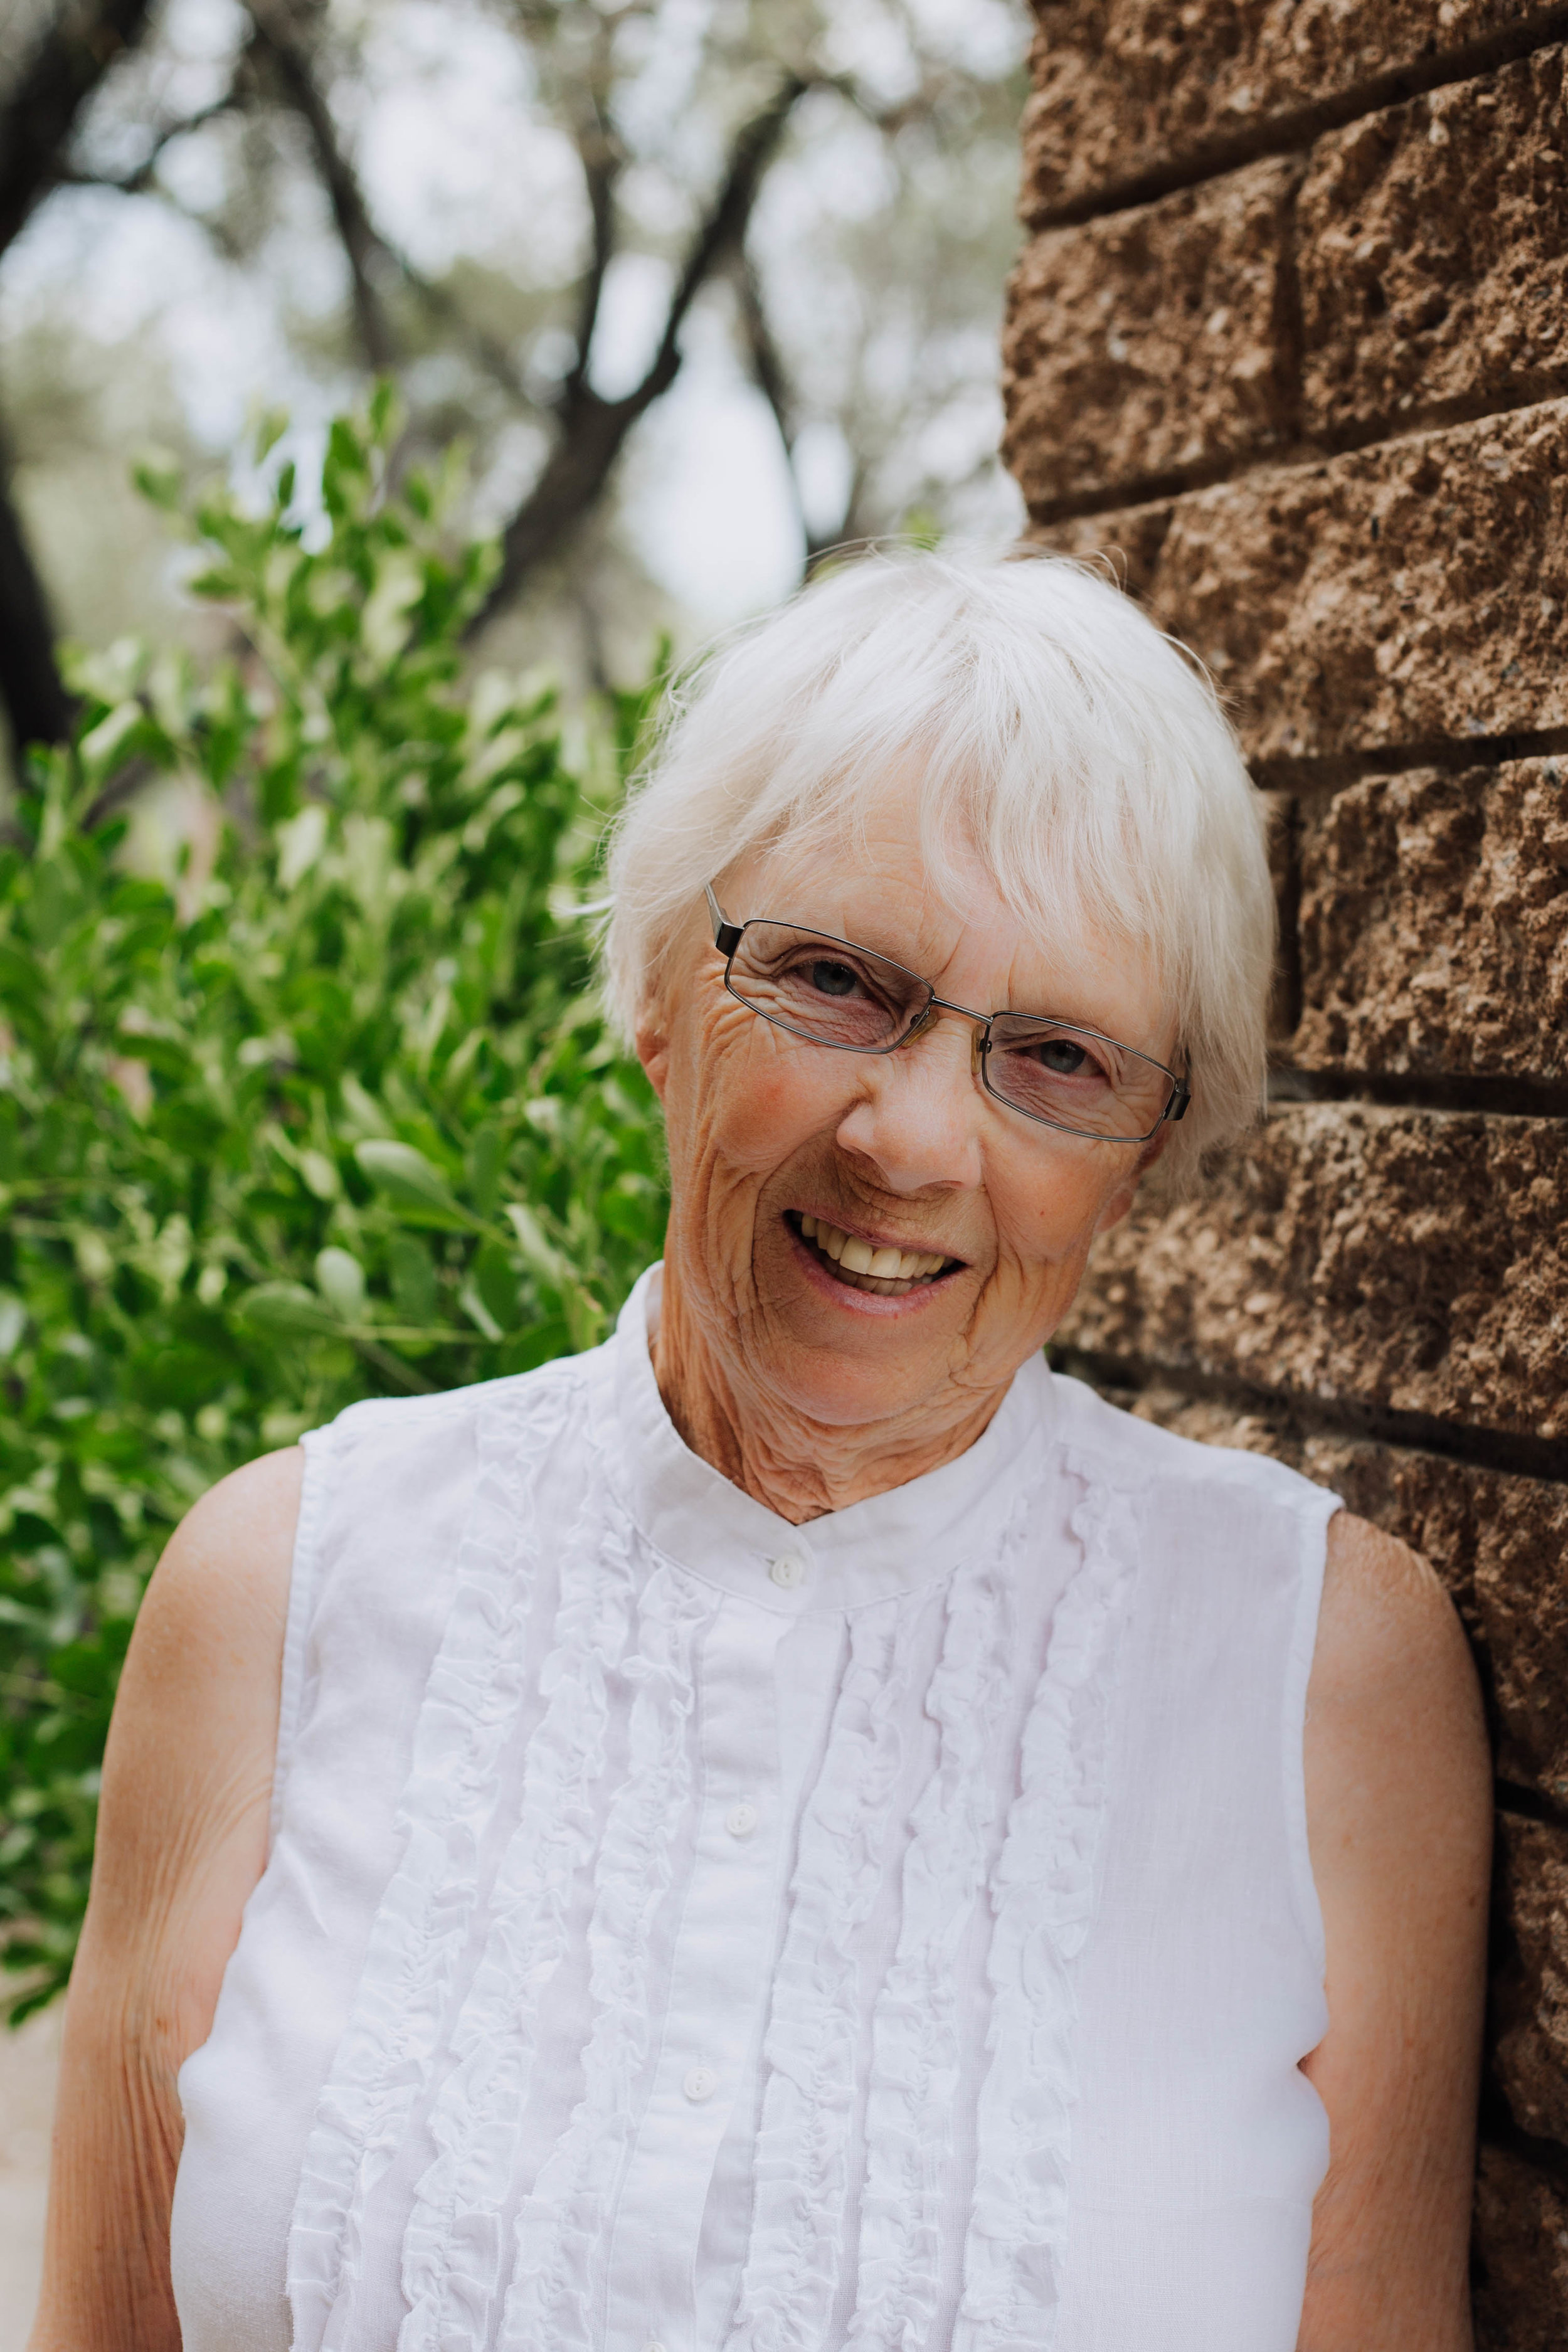 Carol Ray - Carol has been an Administrative Assistant for Steven Phillips and Associates for over 15 years. Carol focuses on client satisfaction and meets each need our clients express.